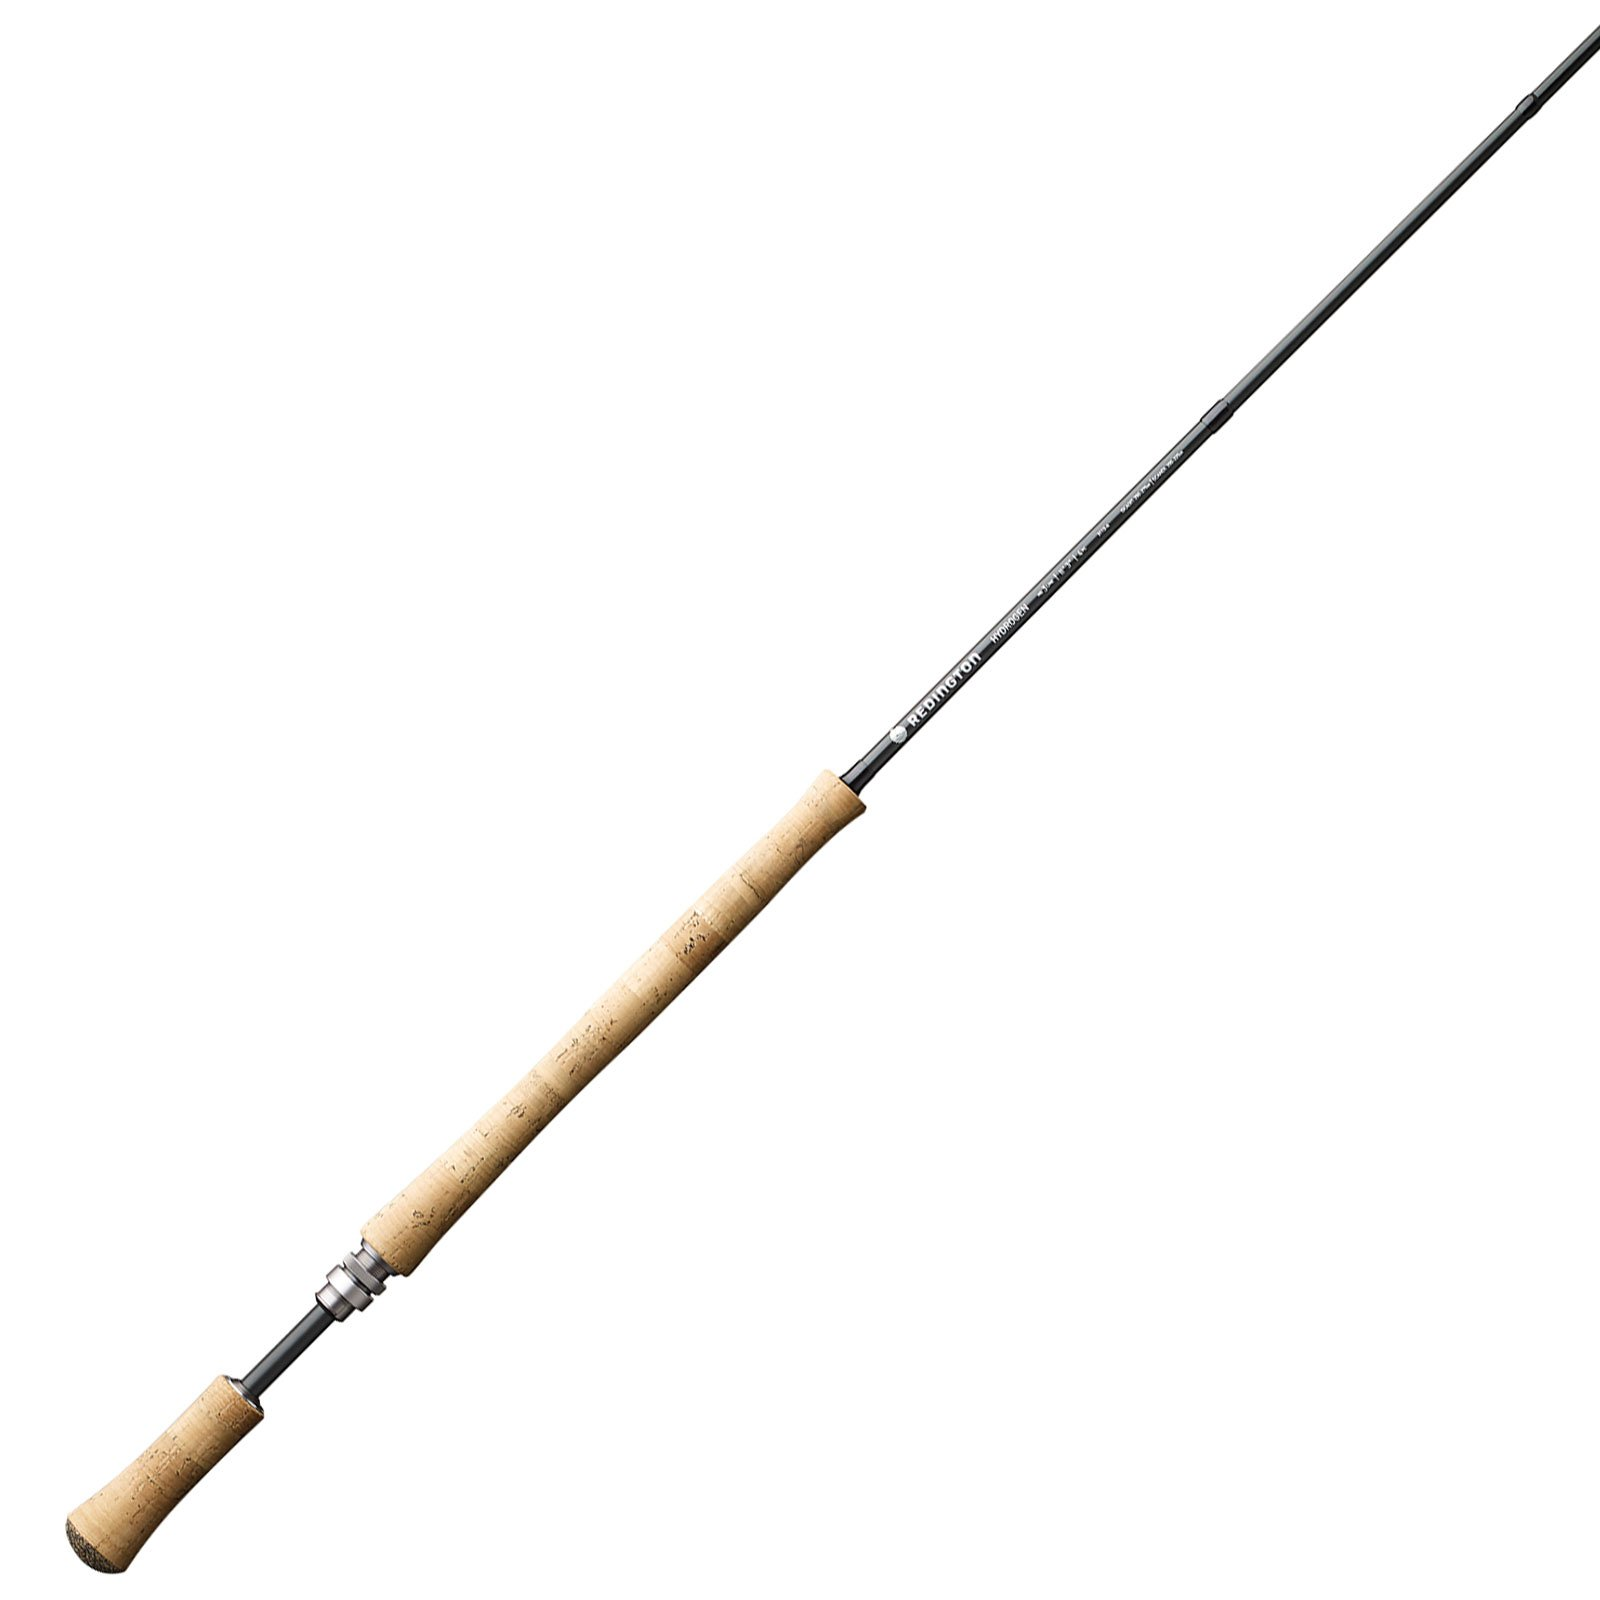 Redington Fly Fishing Fly Fishing Rod 3113-4 Hydrogen Rod with Tube 3WT 11'3'' (Piece 4)